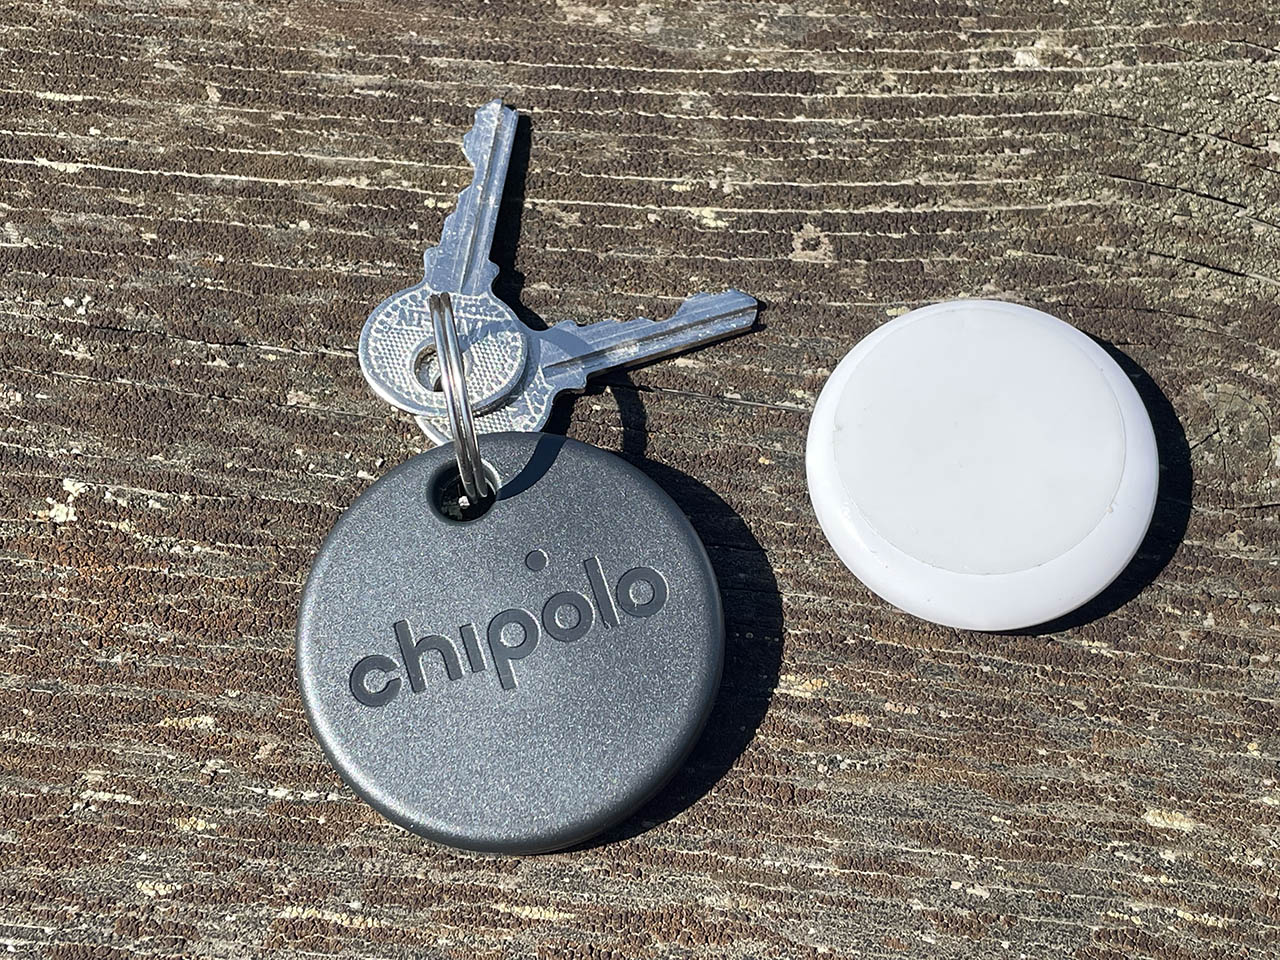 Chipolo One Spot review